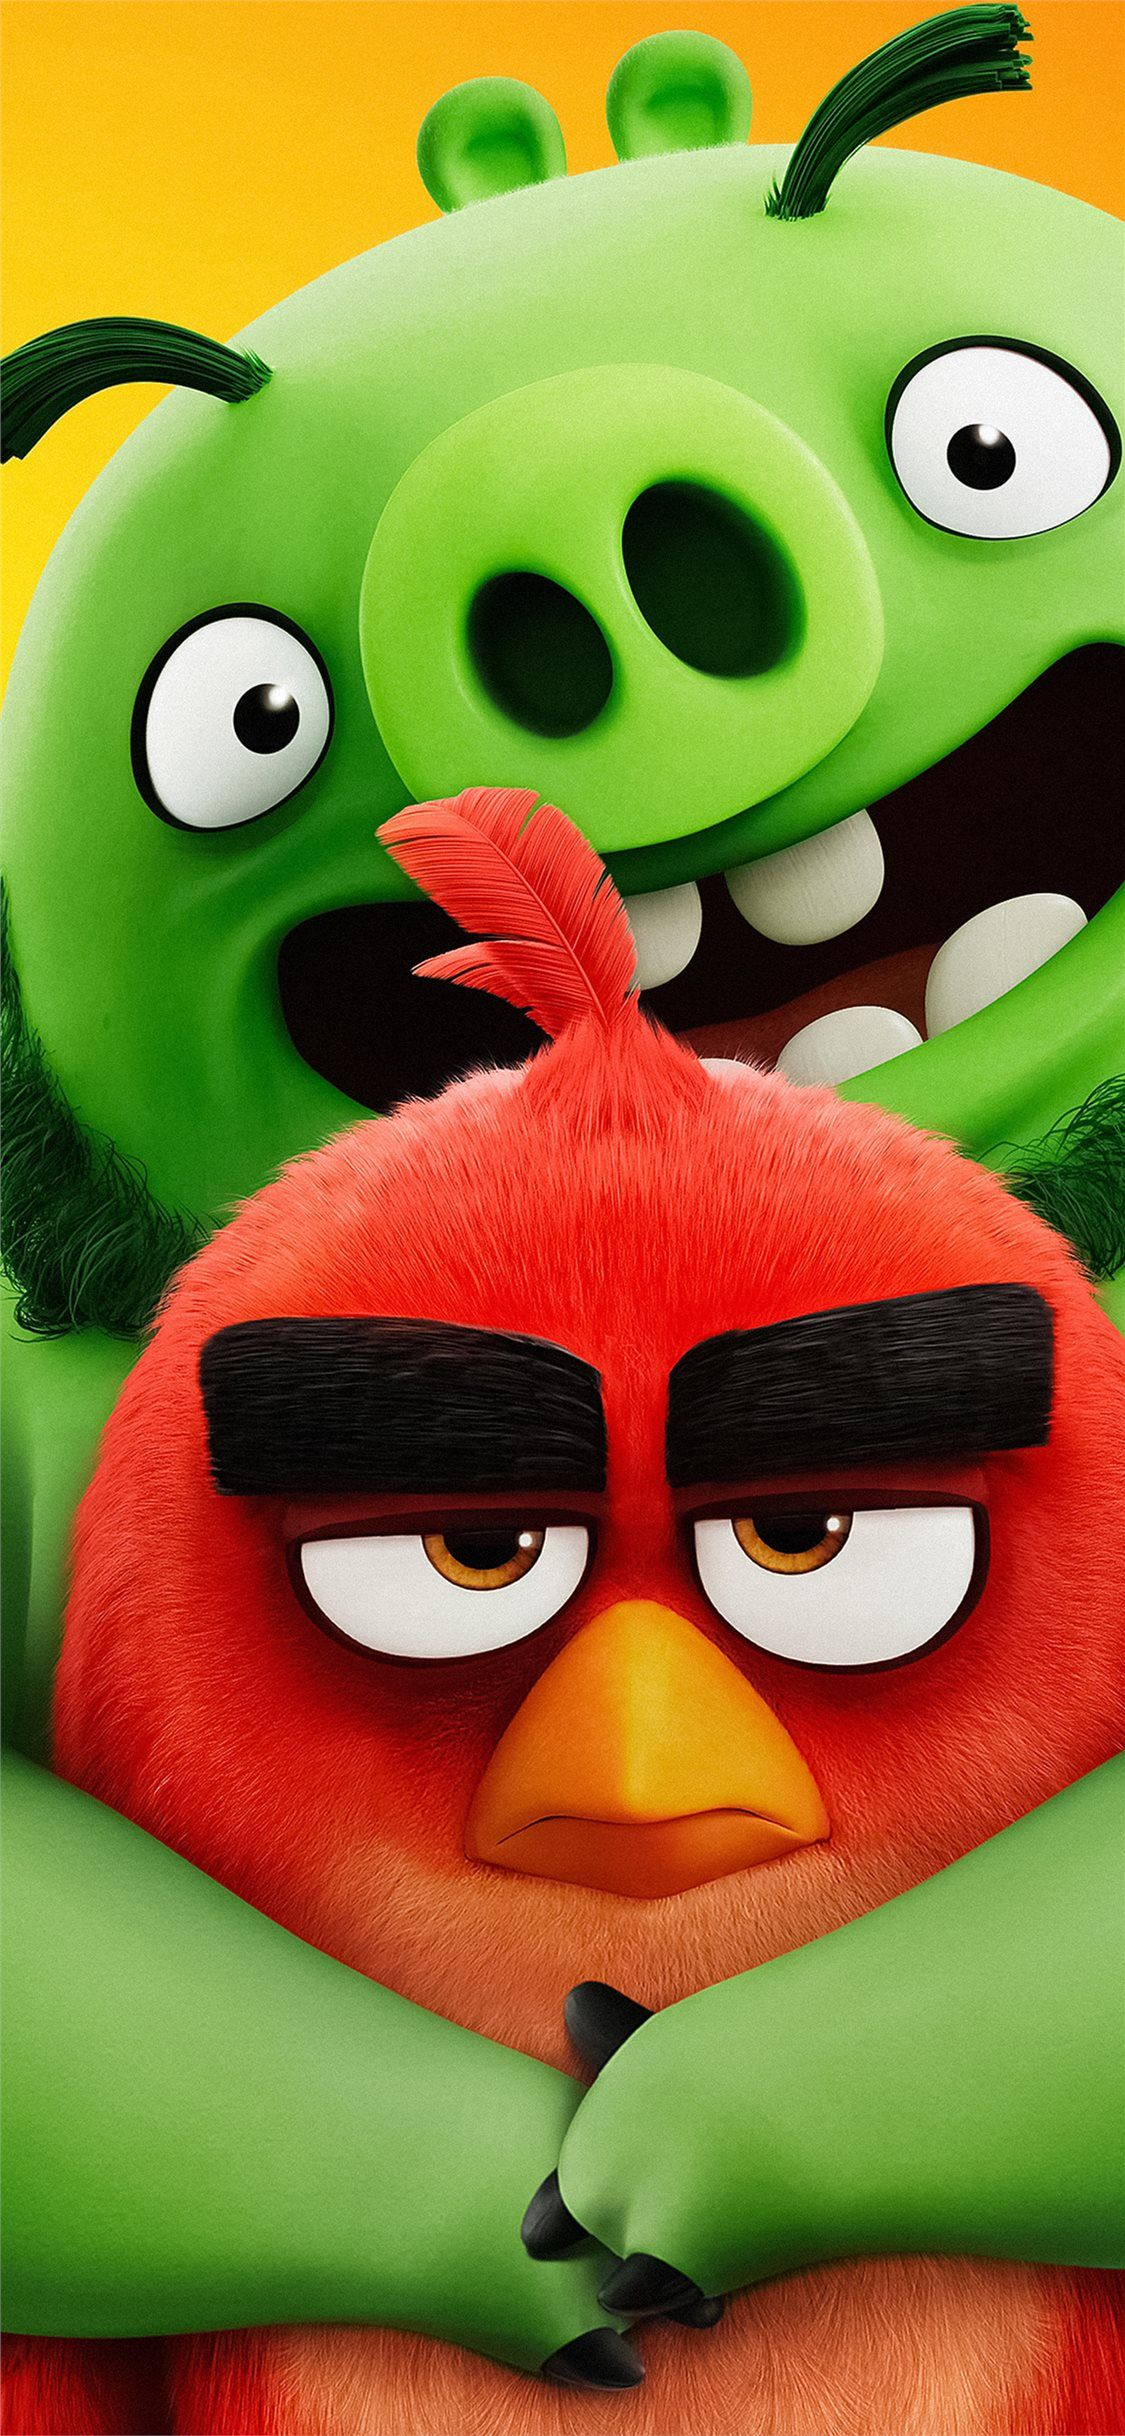 the angry birds movie 2 2019 5k new iPhone X Wallpapers in ...